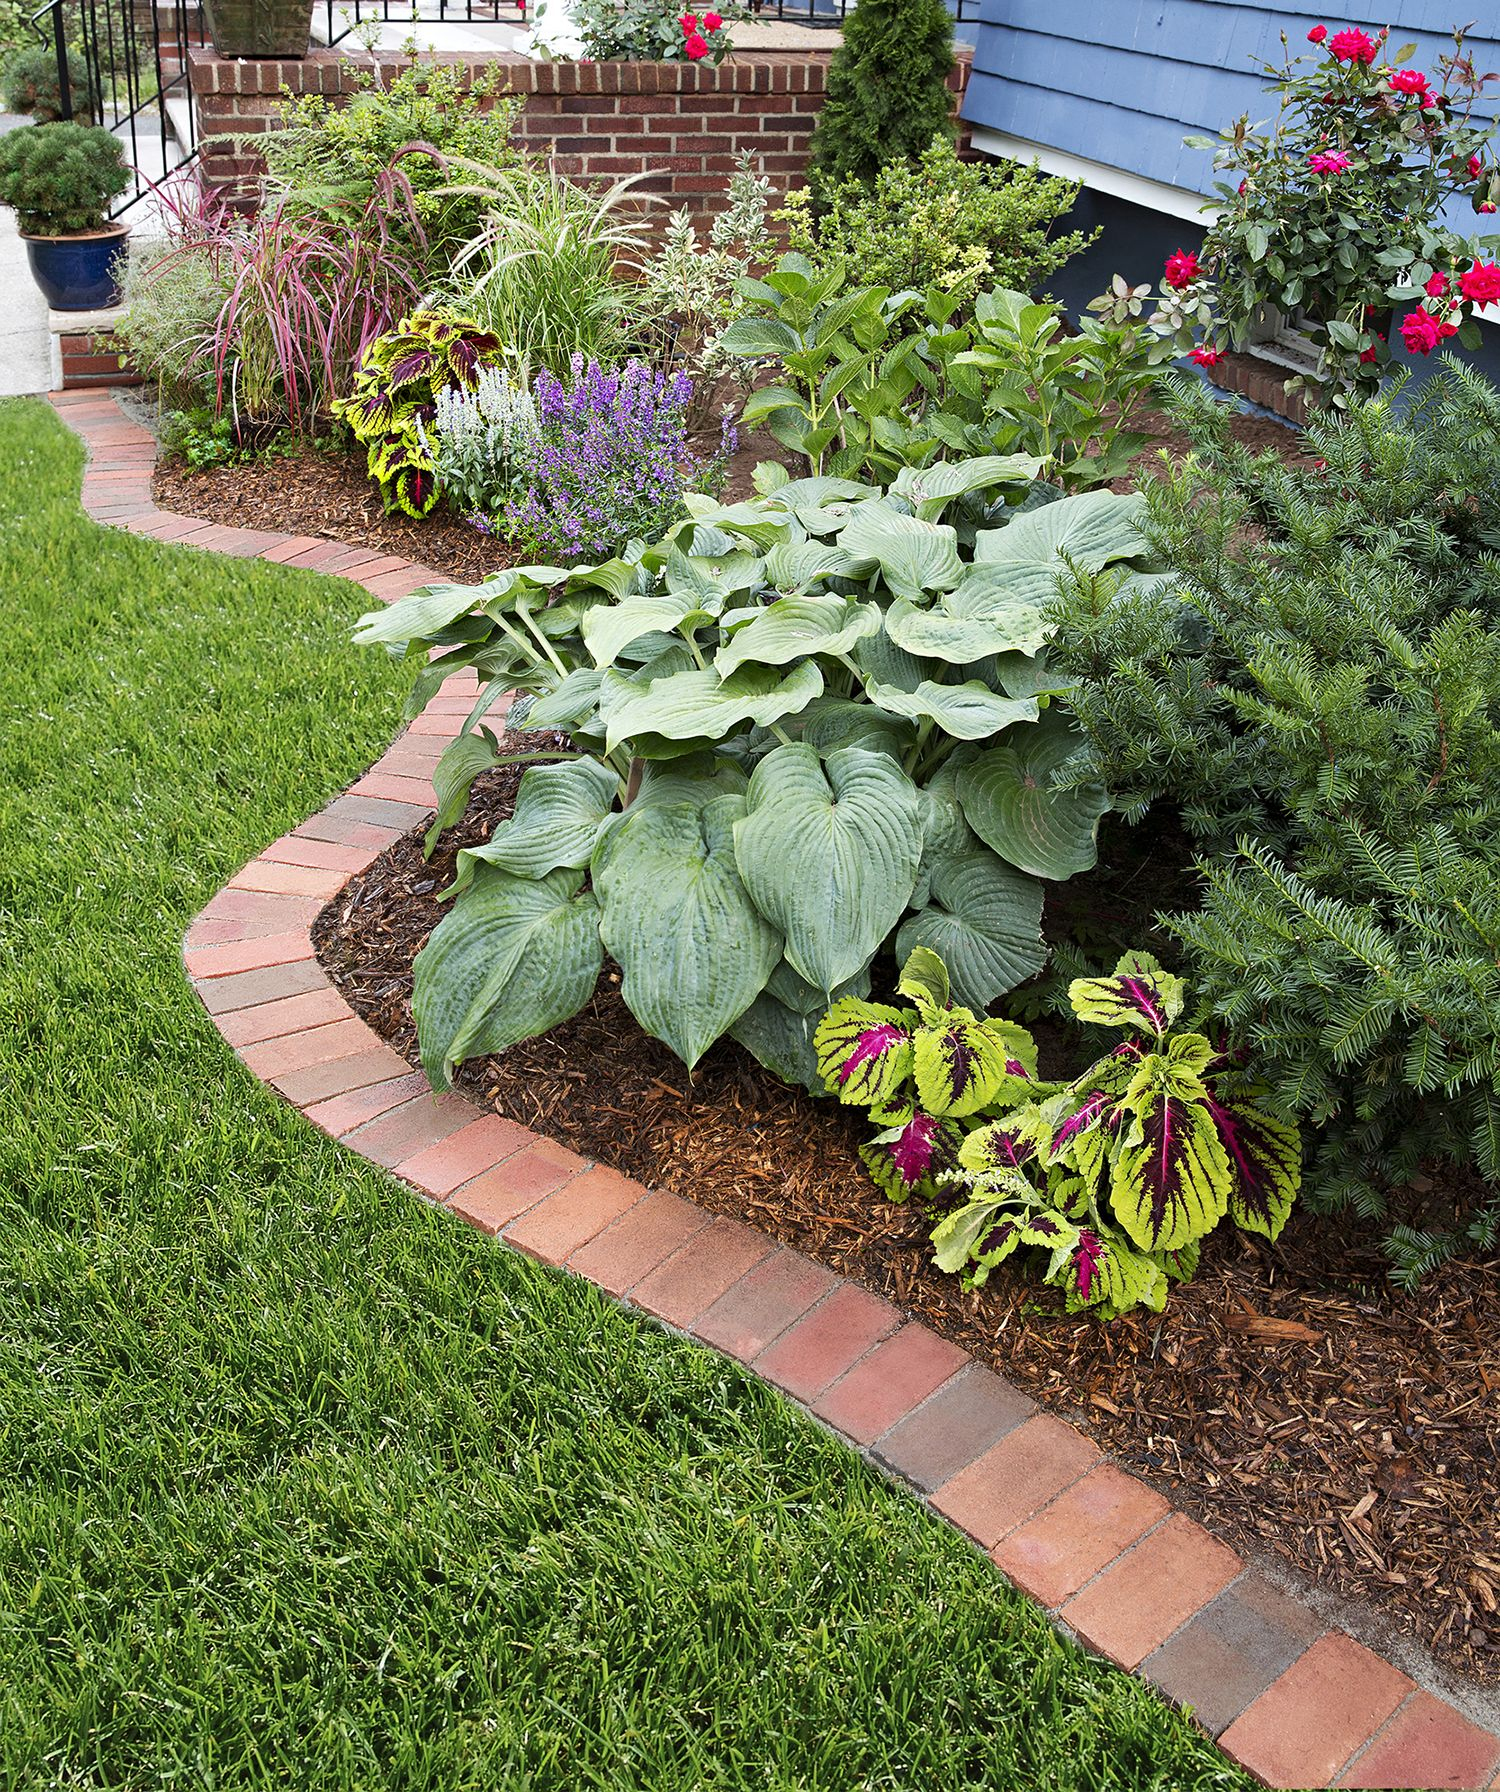 How To Edge A Garden Bed With Brick Brick Garden Edging Brick Garden Garden Pavers